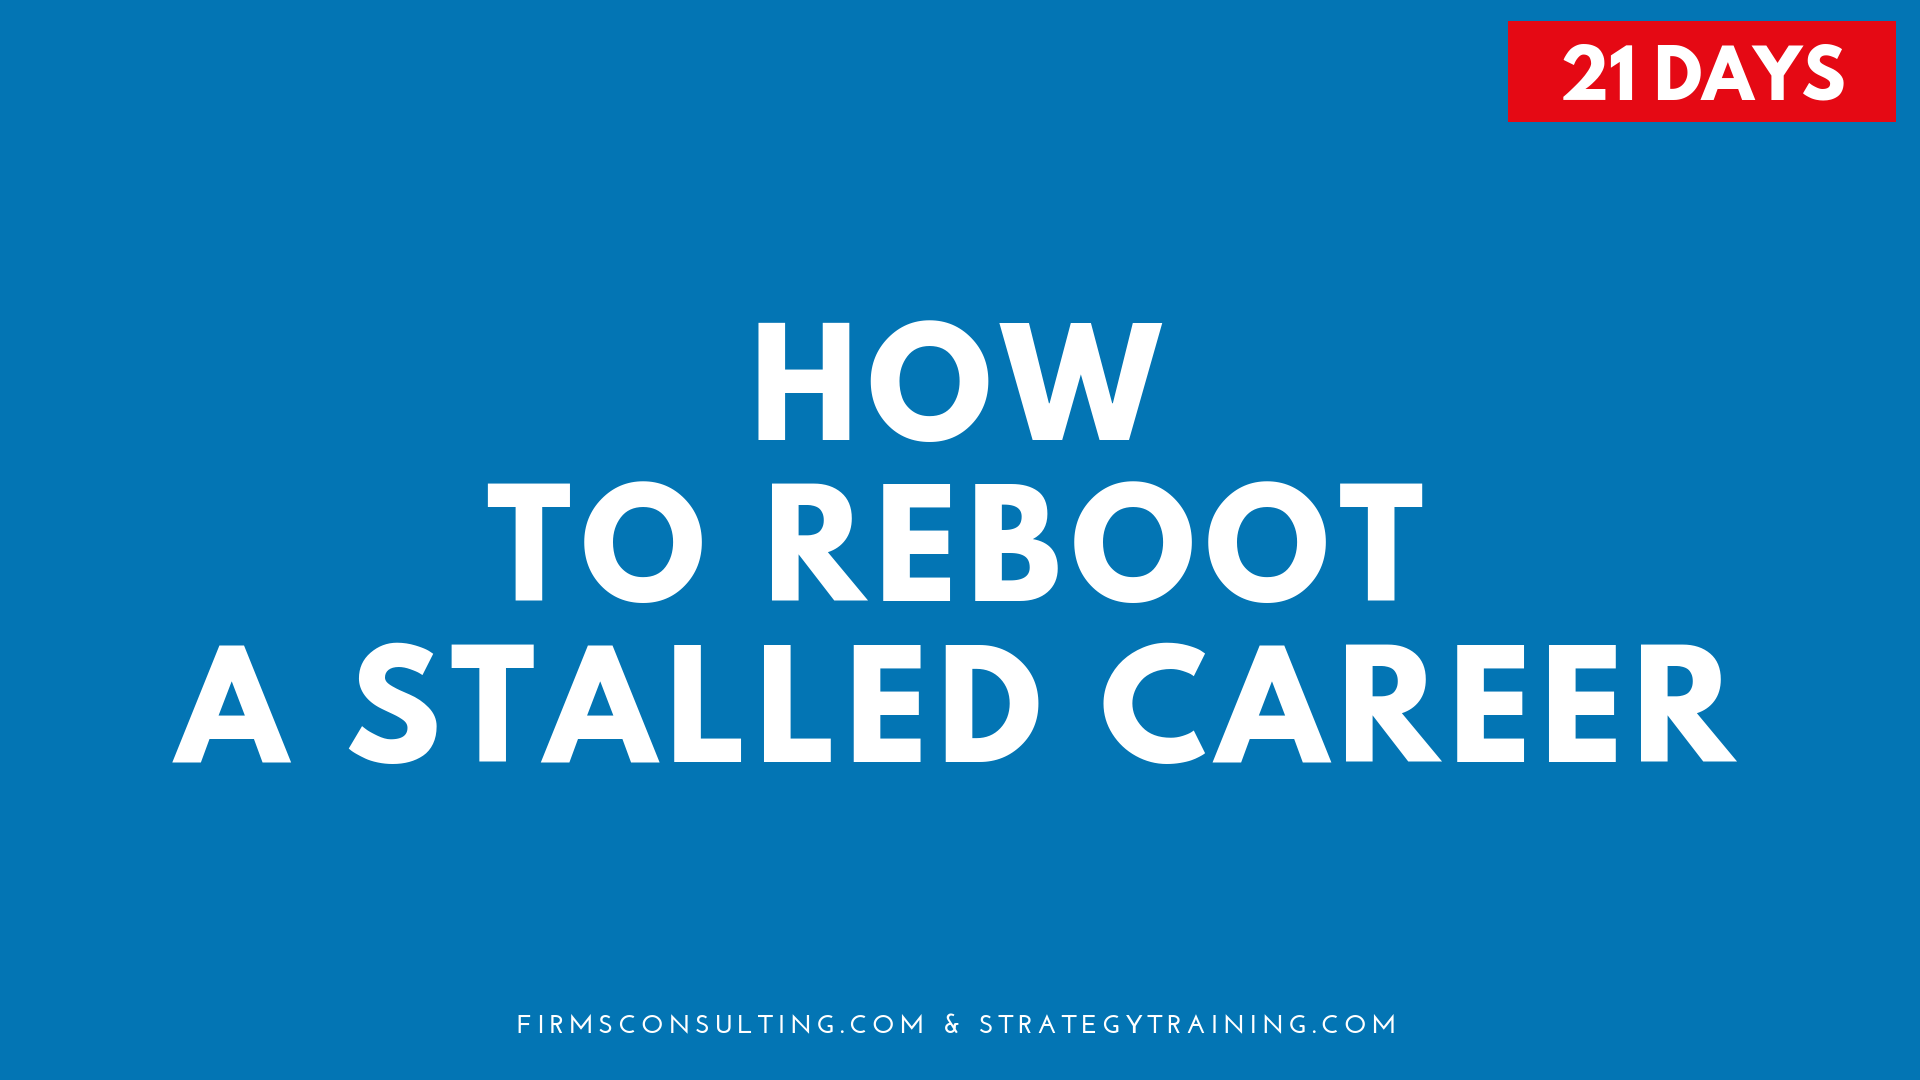 Poster for the program How to Reboot a Stalled Career